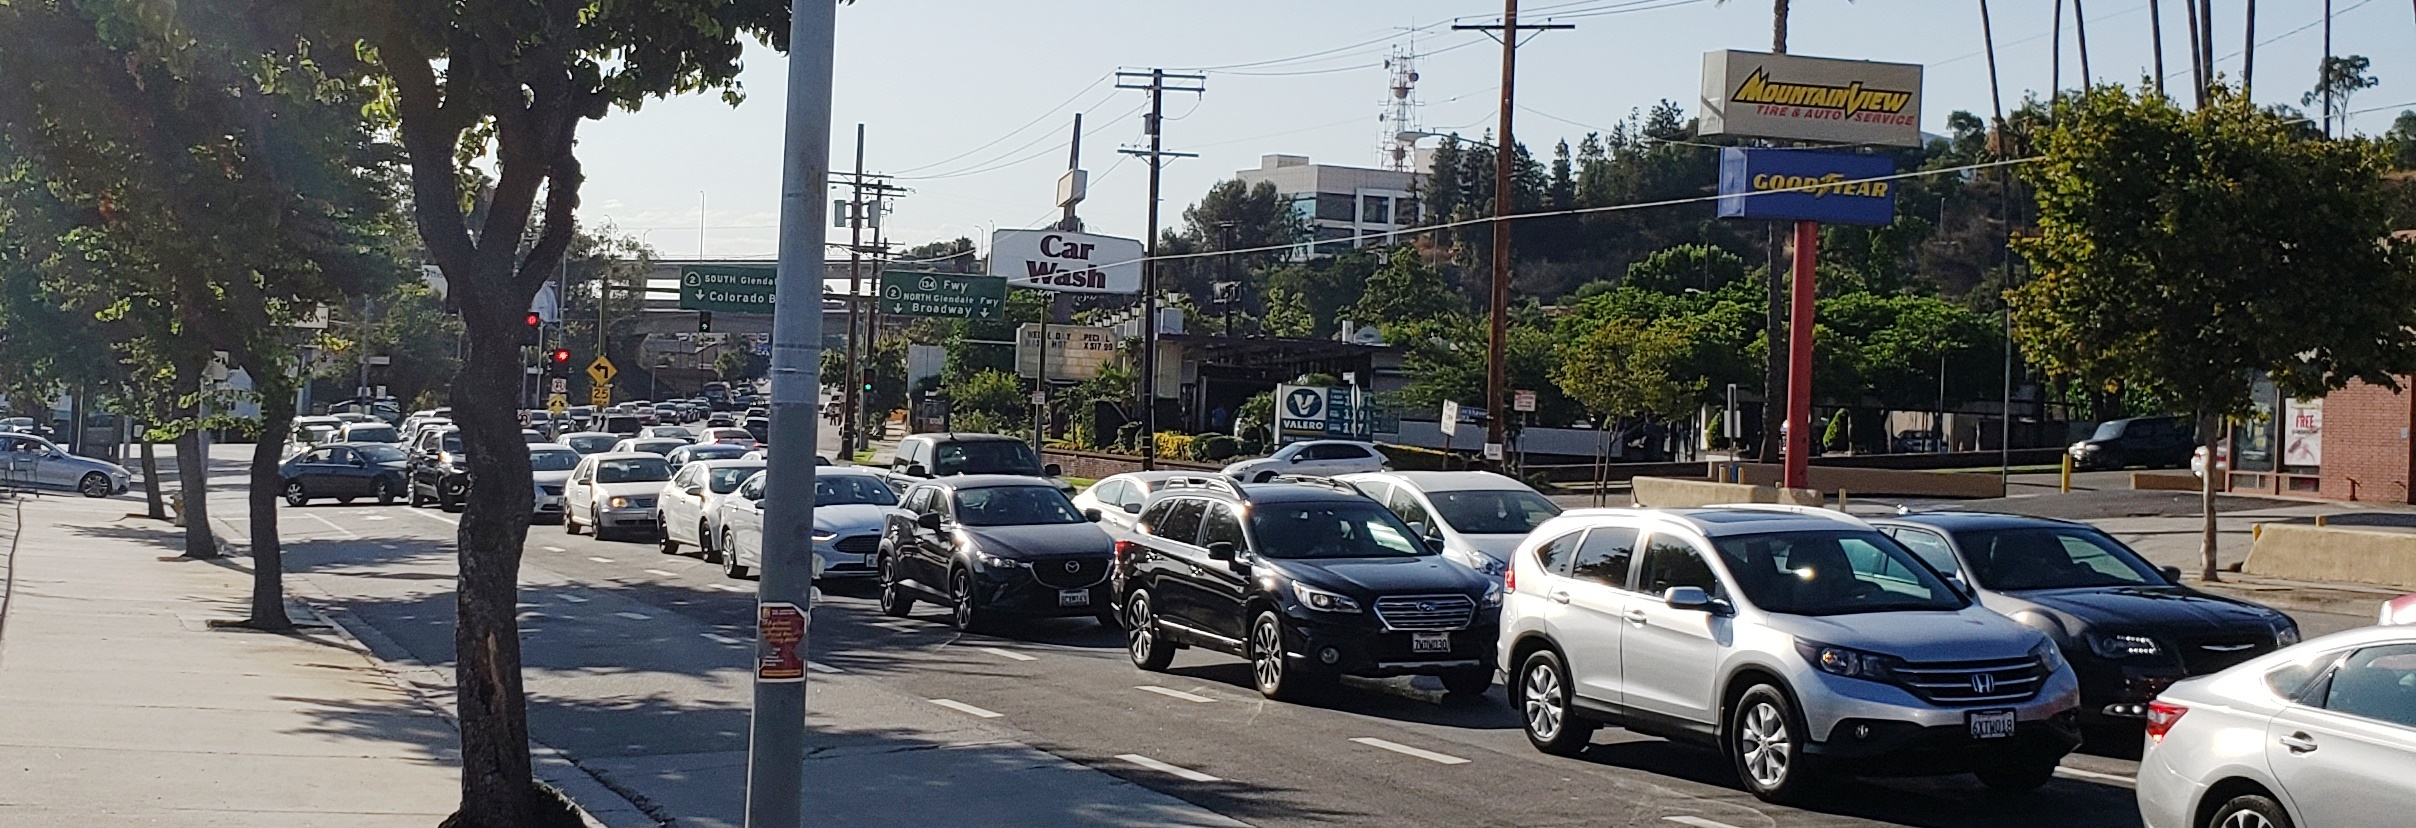 LA Metro is planning to take Colorado Blvd through Eagle Rock down to one lane in each direction. With two lanes this road backs up for miles, this is a typical evening commute on Colorado Blvd through Eagle Rock - LADOT's Traffic Count from 2012 says this road carries 46,000+ cars per day